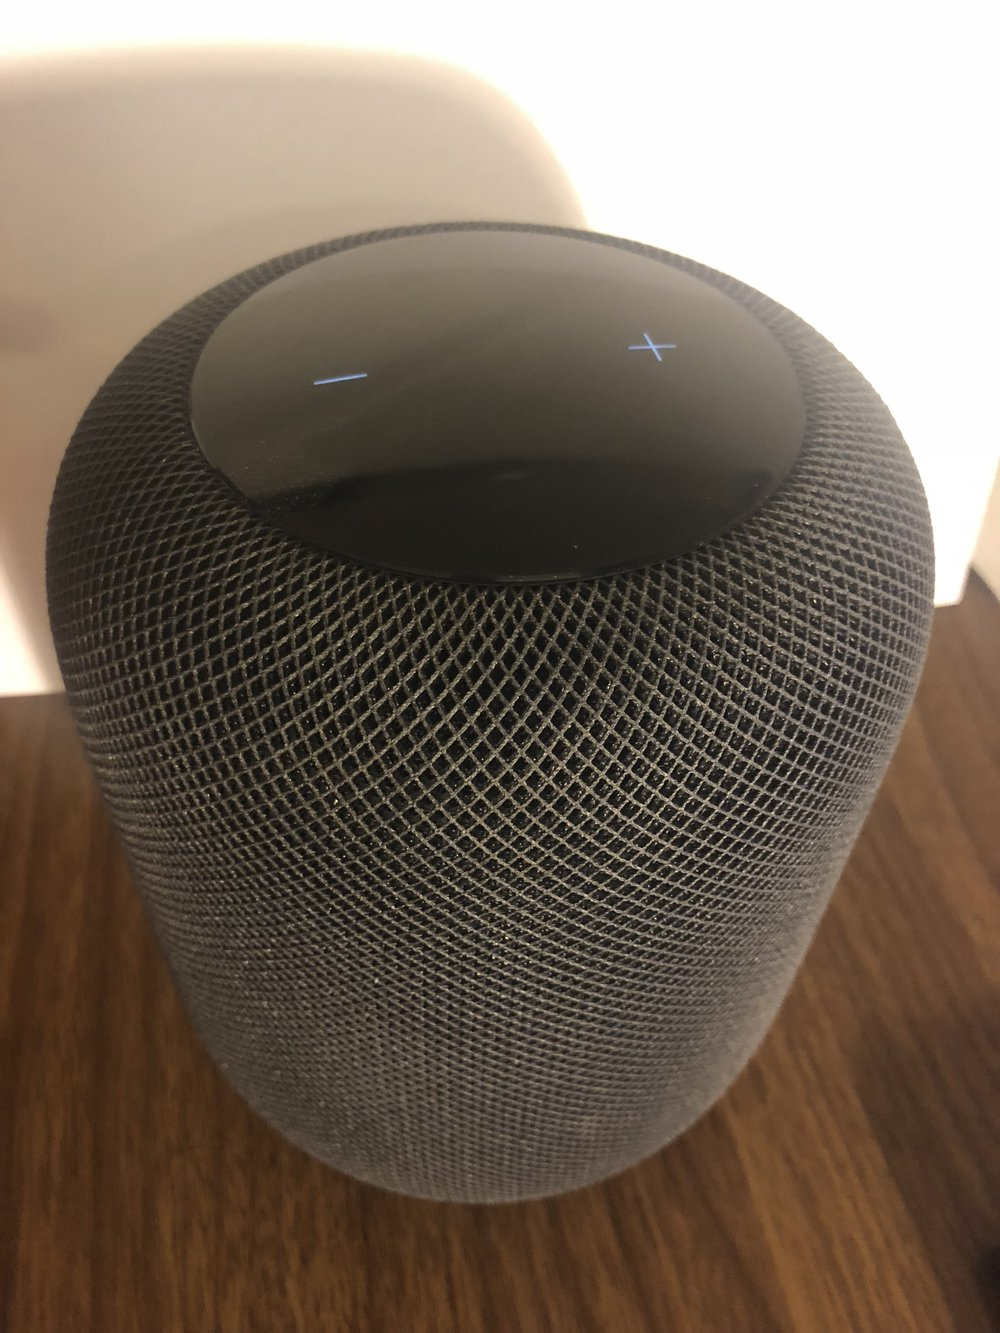 Showing the top of the HomePod when playing music